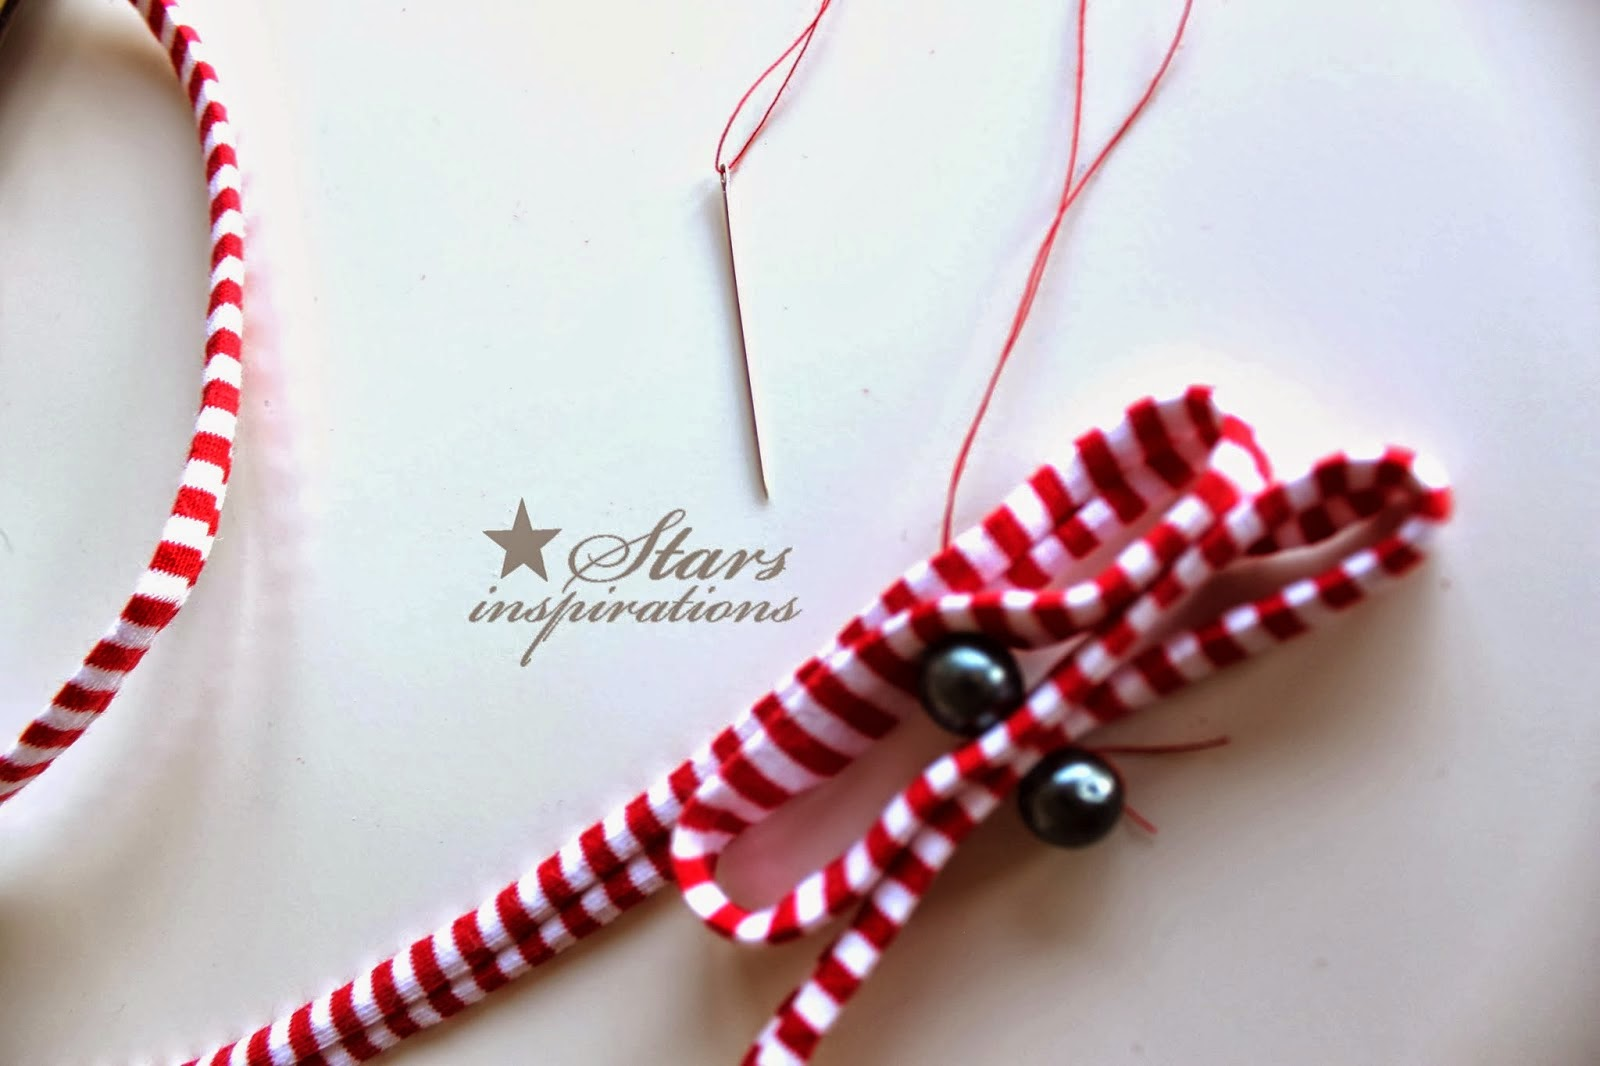 http://starsinspirations.blogspot.ch/2013/12/christmas-decorations-part-3.html?m=1